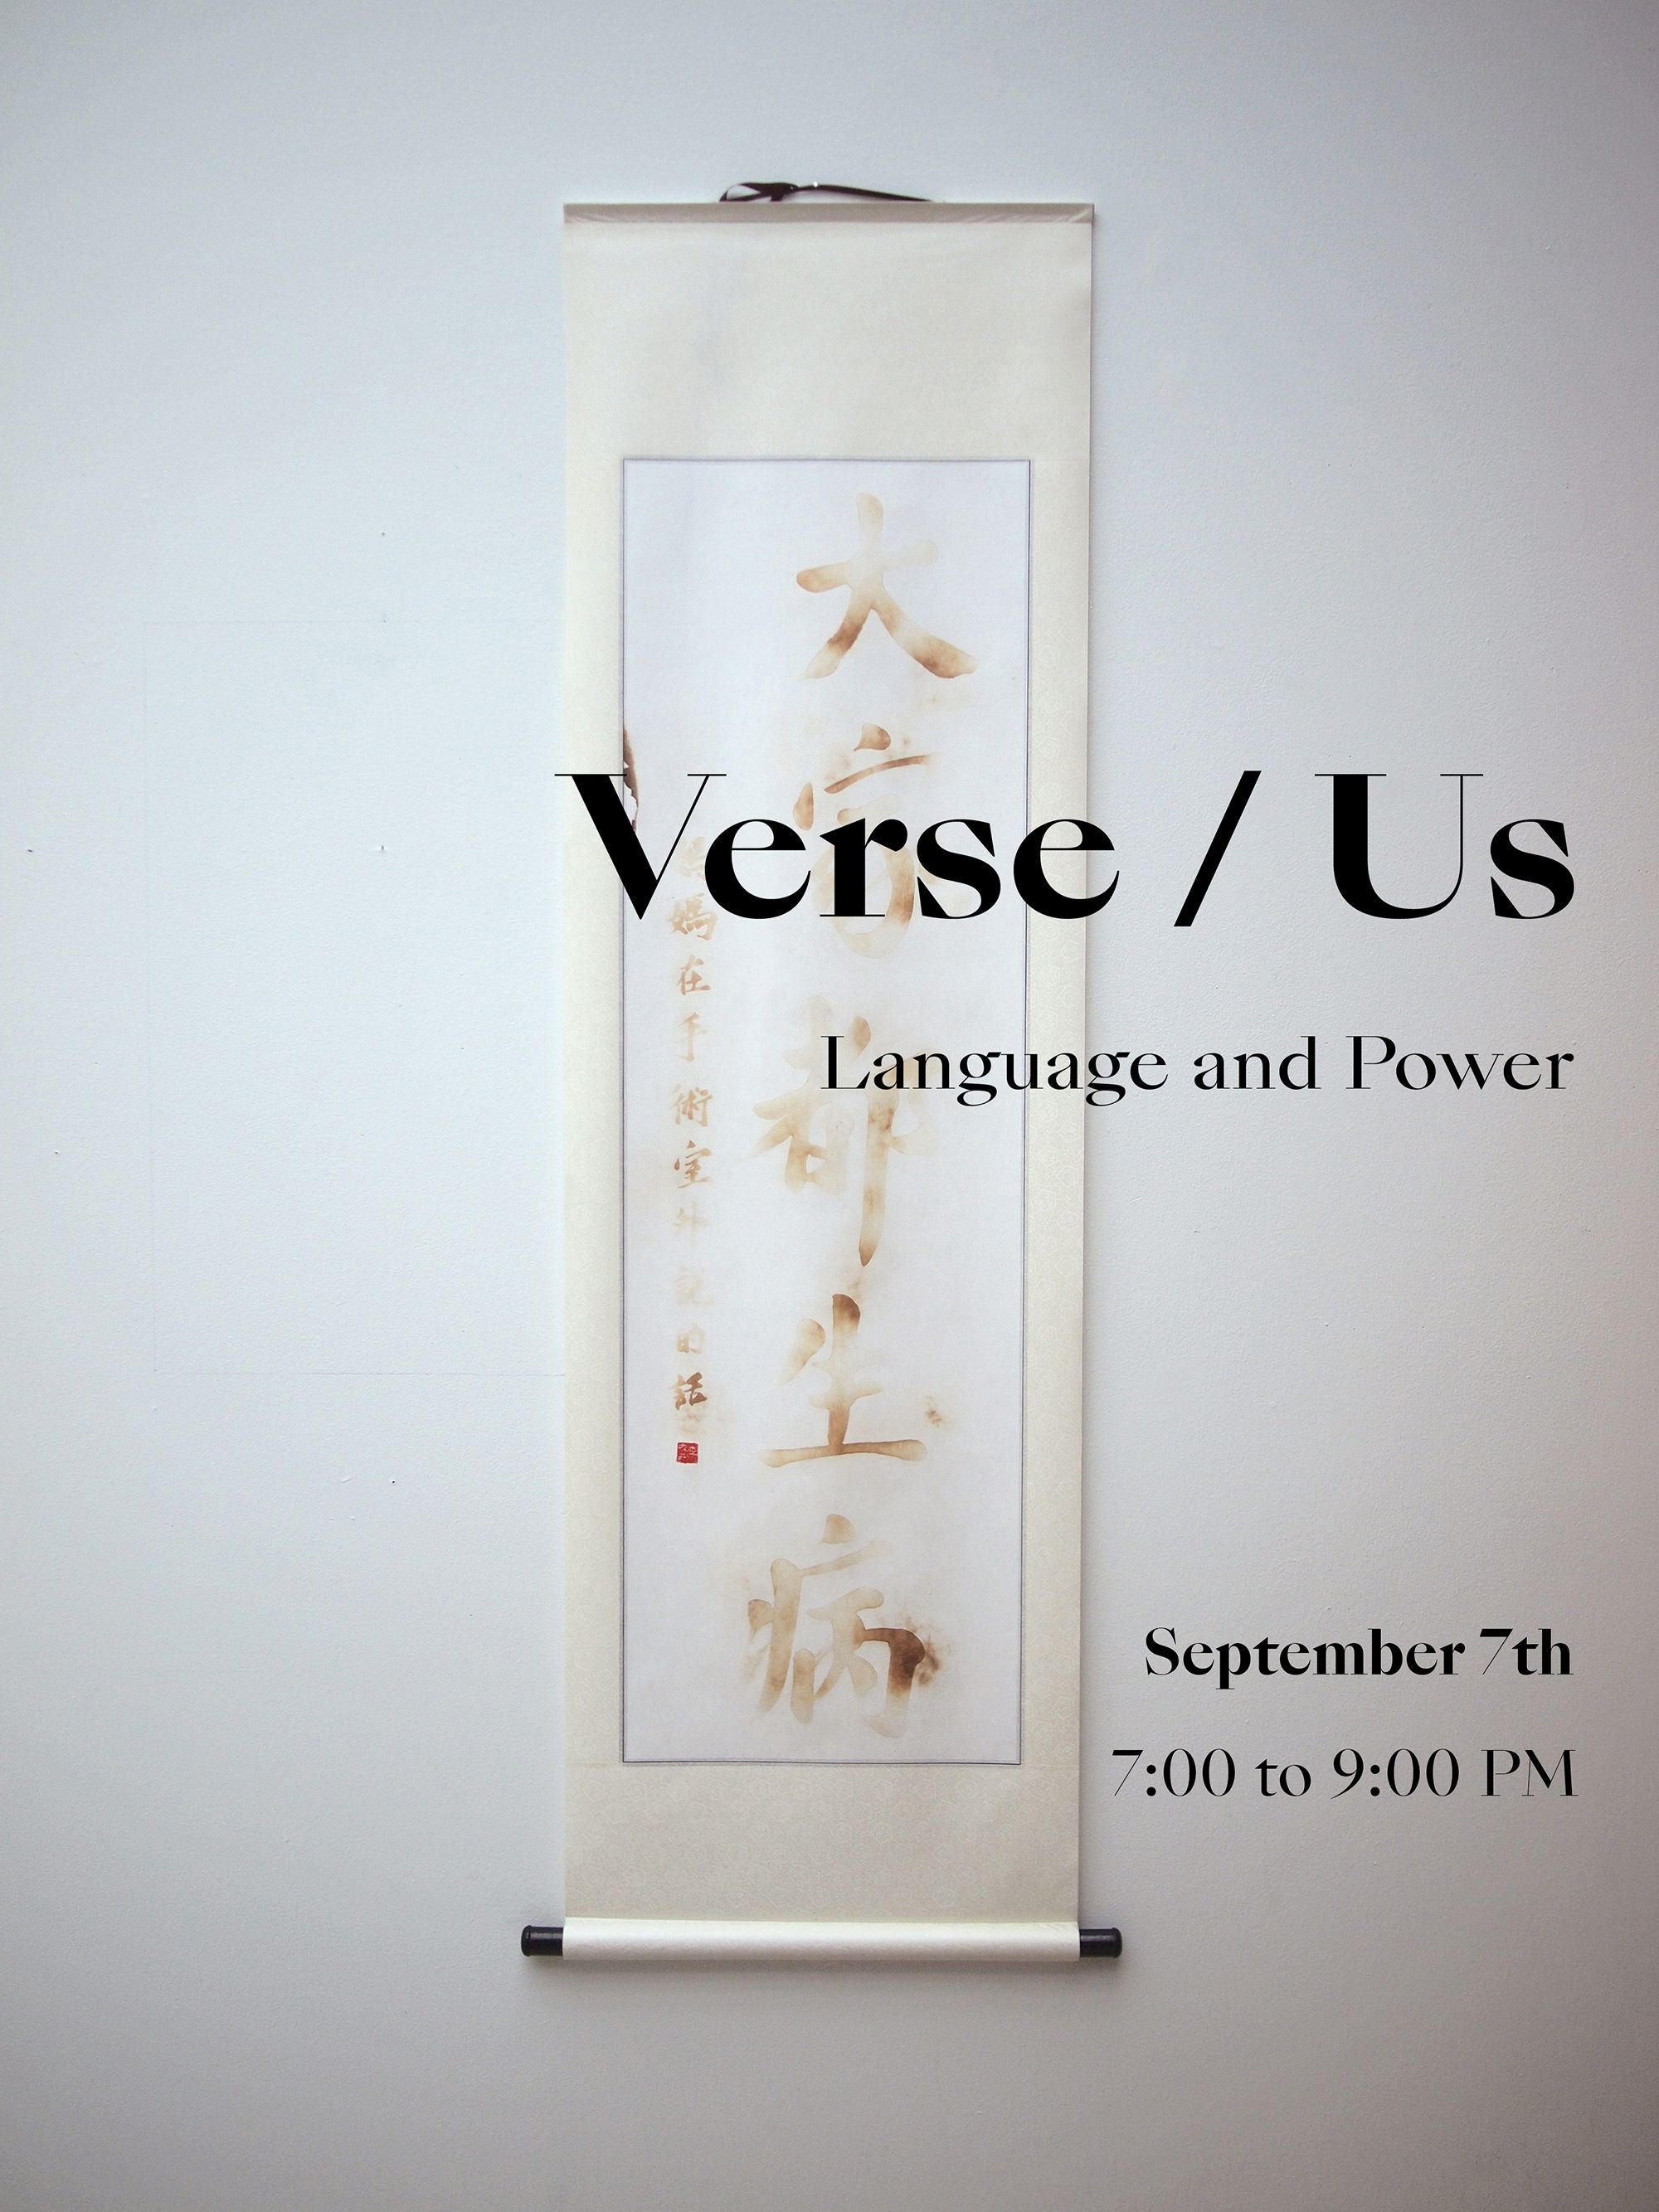 Verse Us Language and Power Artist Helen Lee Curator Jenie Gao